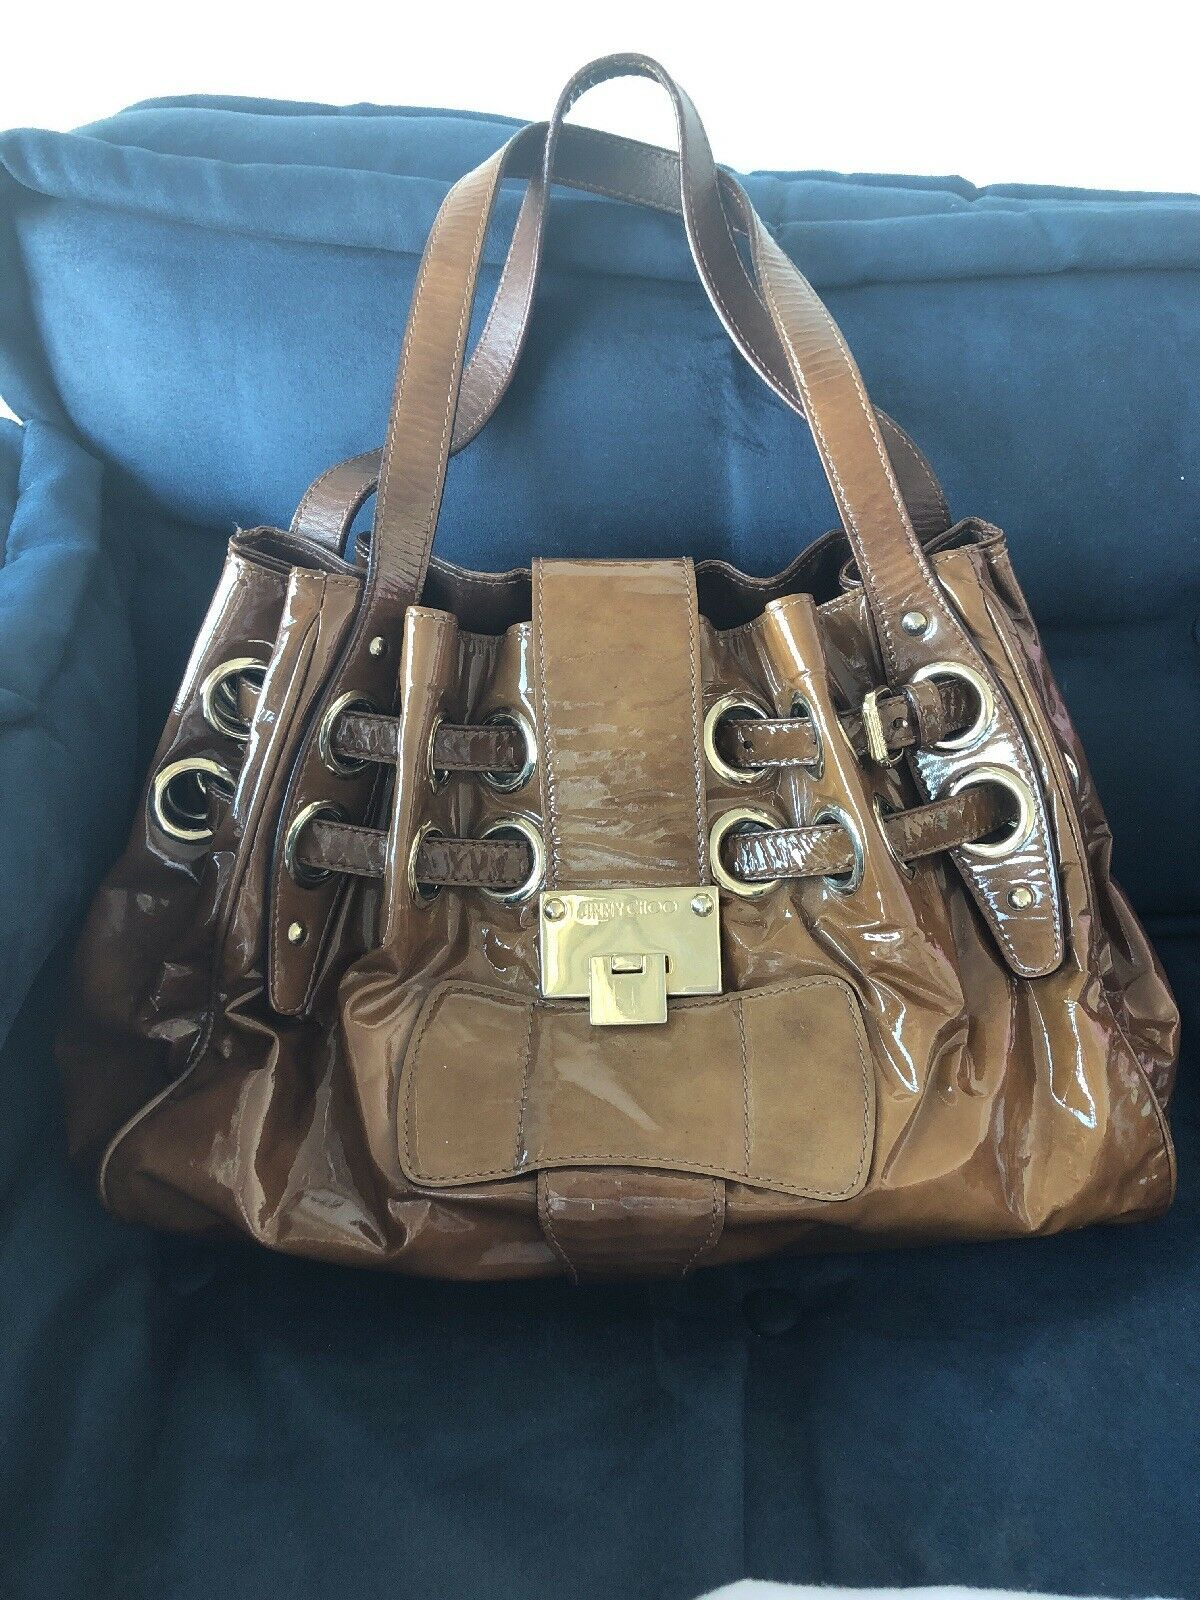 9a3ee33f71f4 Jimmy Choo Patent Leather Riki ramona Handbag in Cigar Color for ...